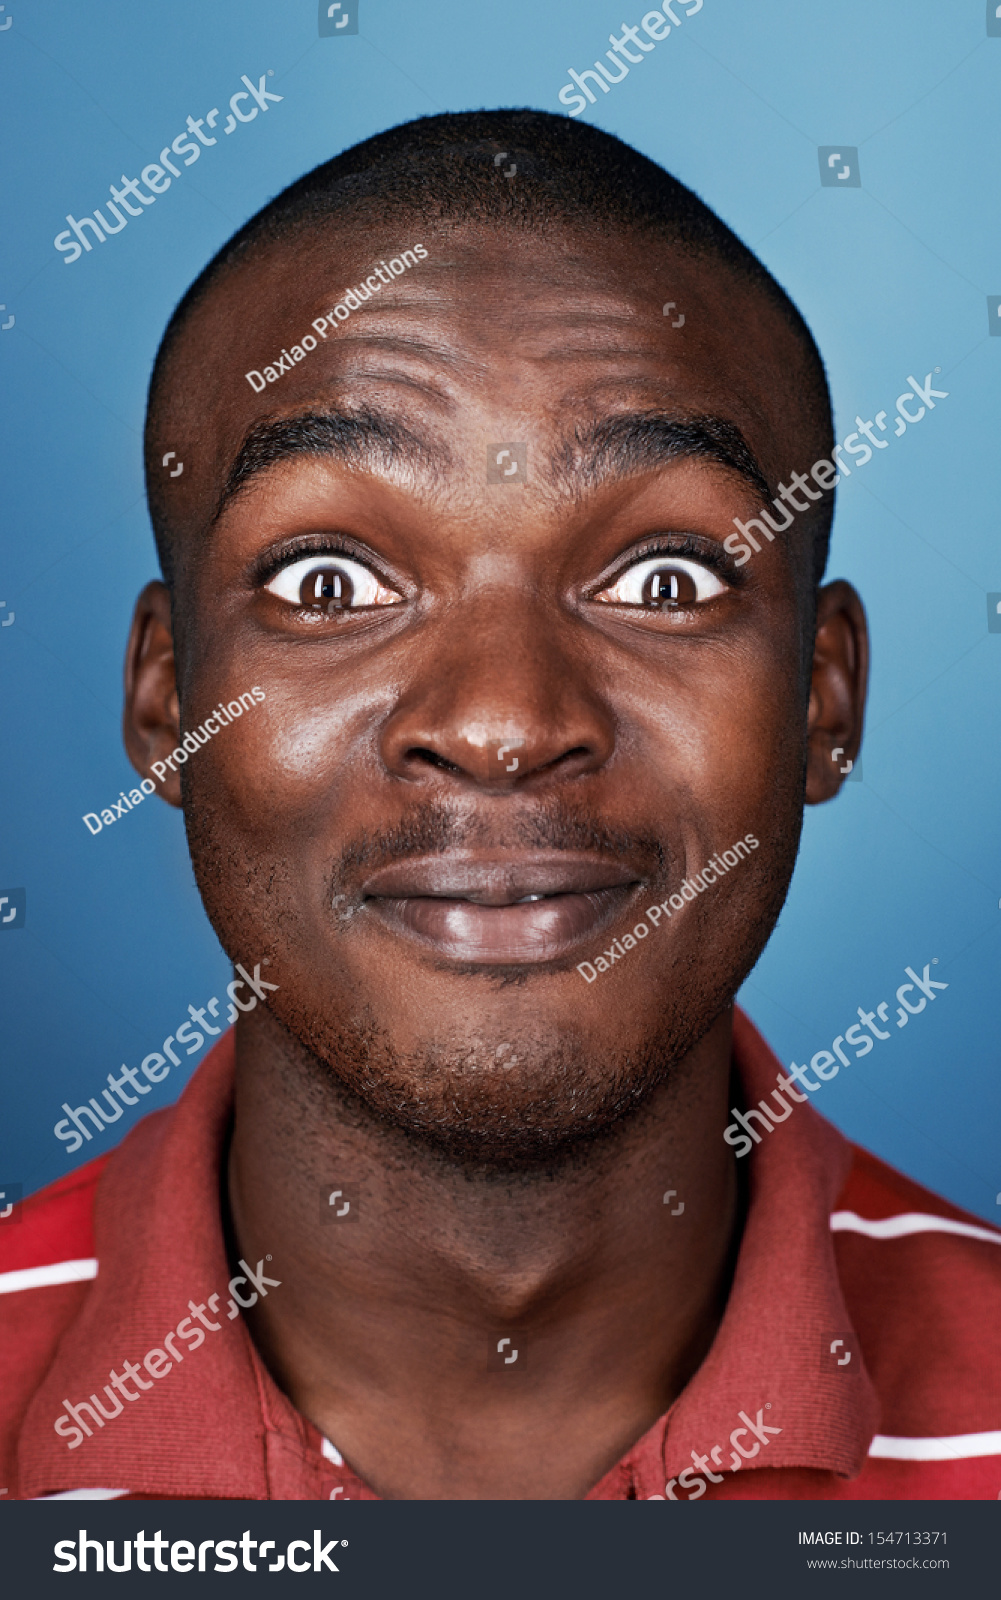 Real African Man Silly Funny Face Stock Photo 154713371